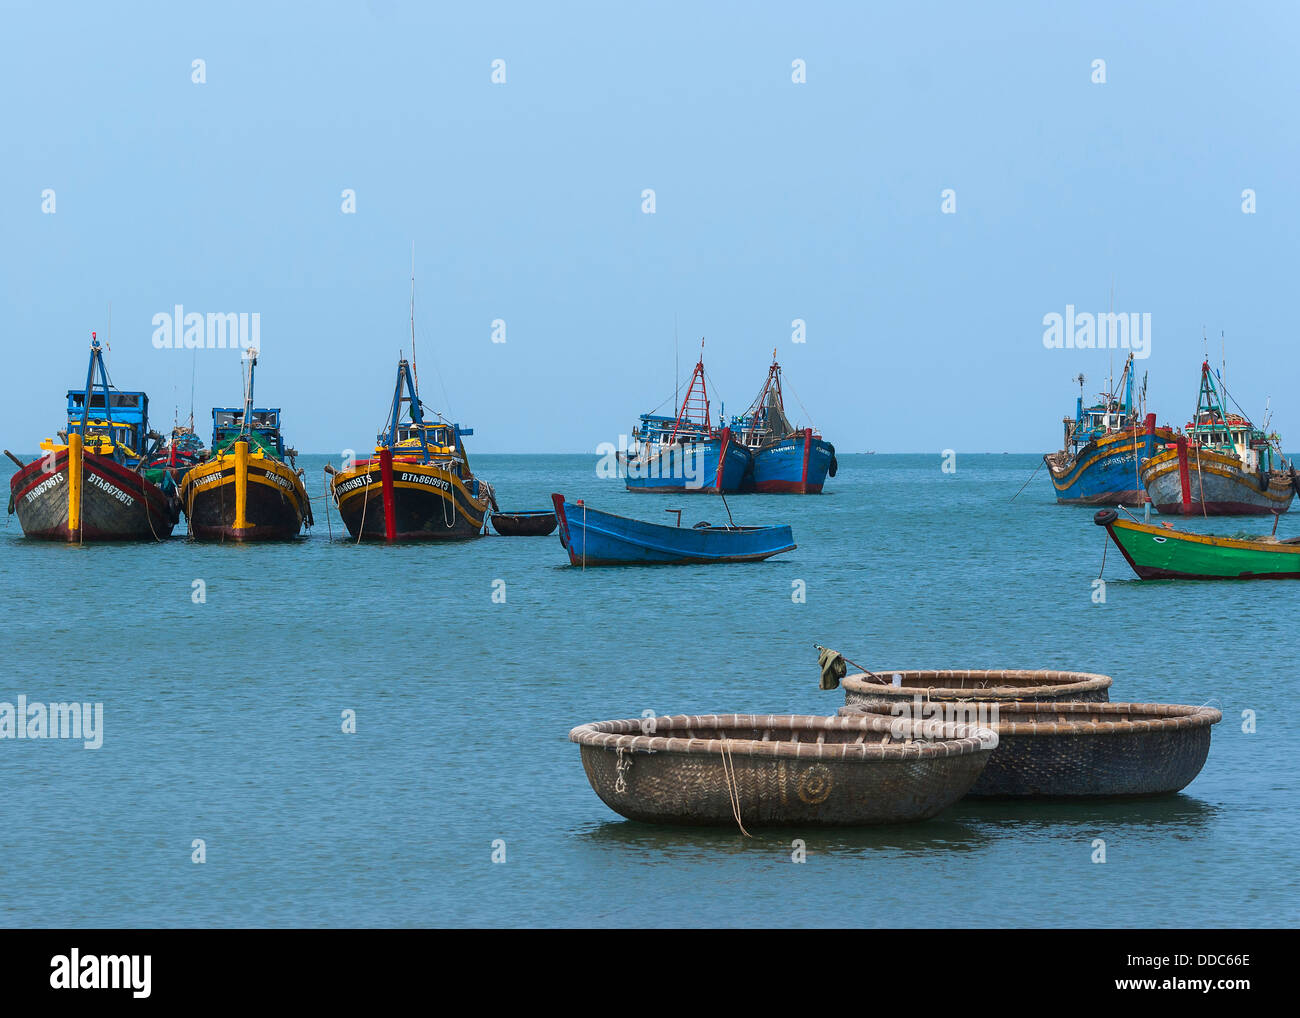 A few fishing vessels float on the South China sea in front of Mui Ne village in South Vietnam. - Stock Image